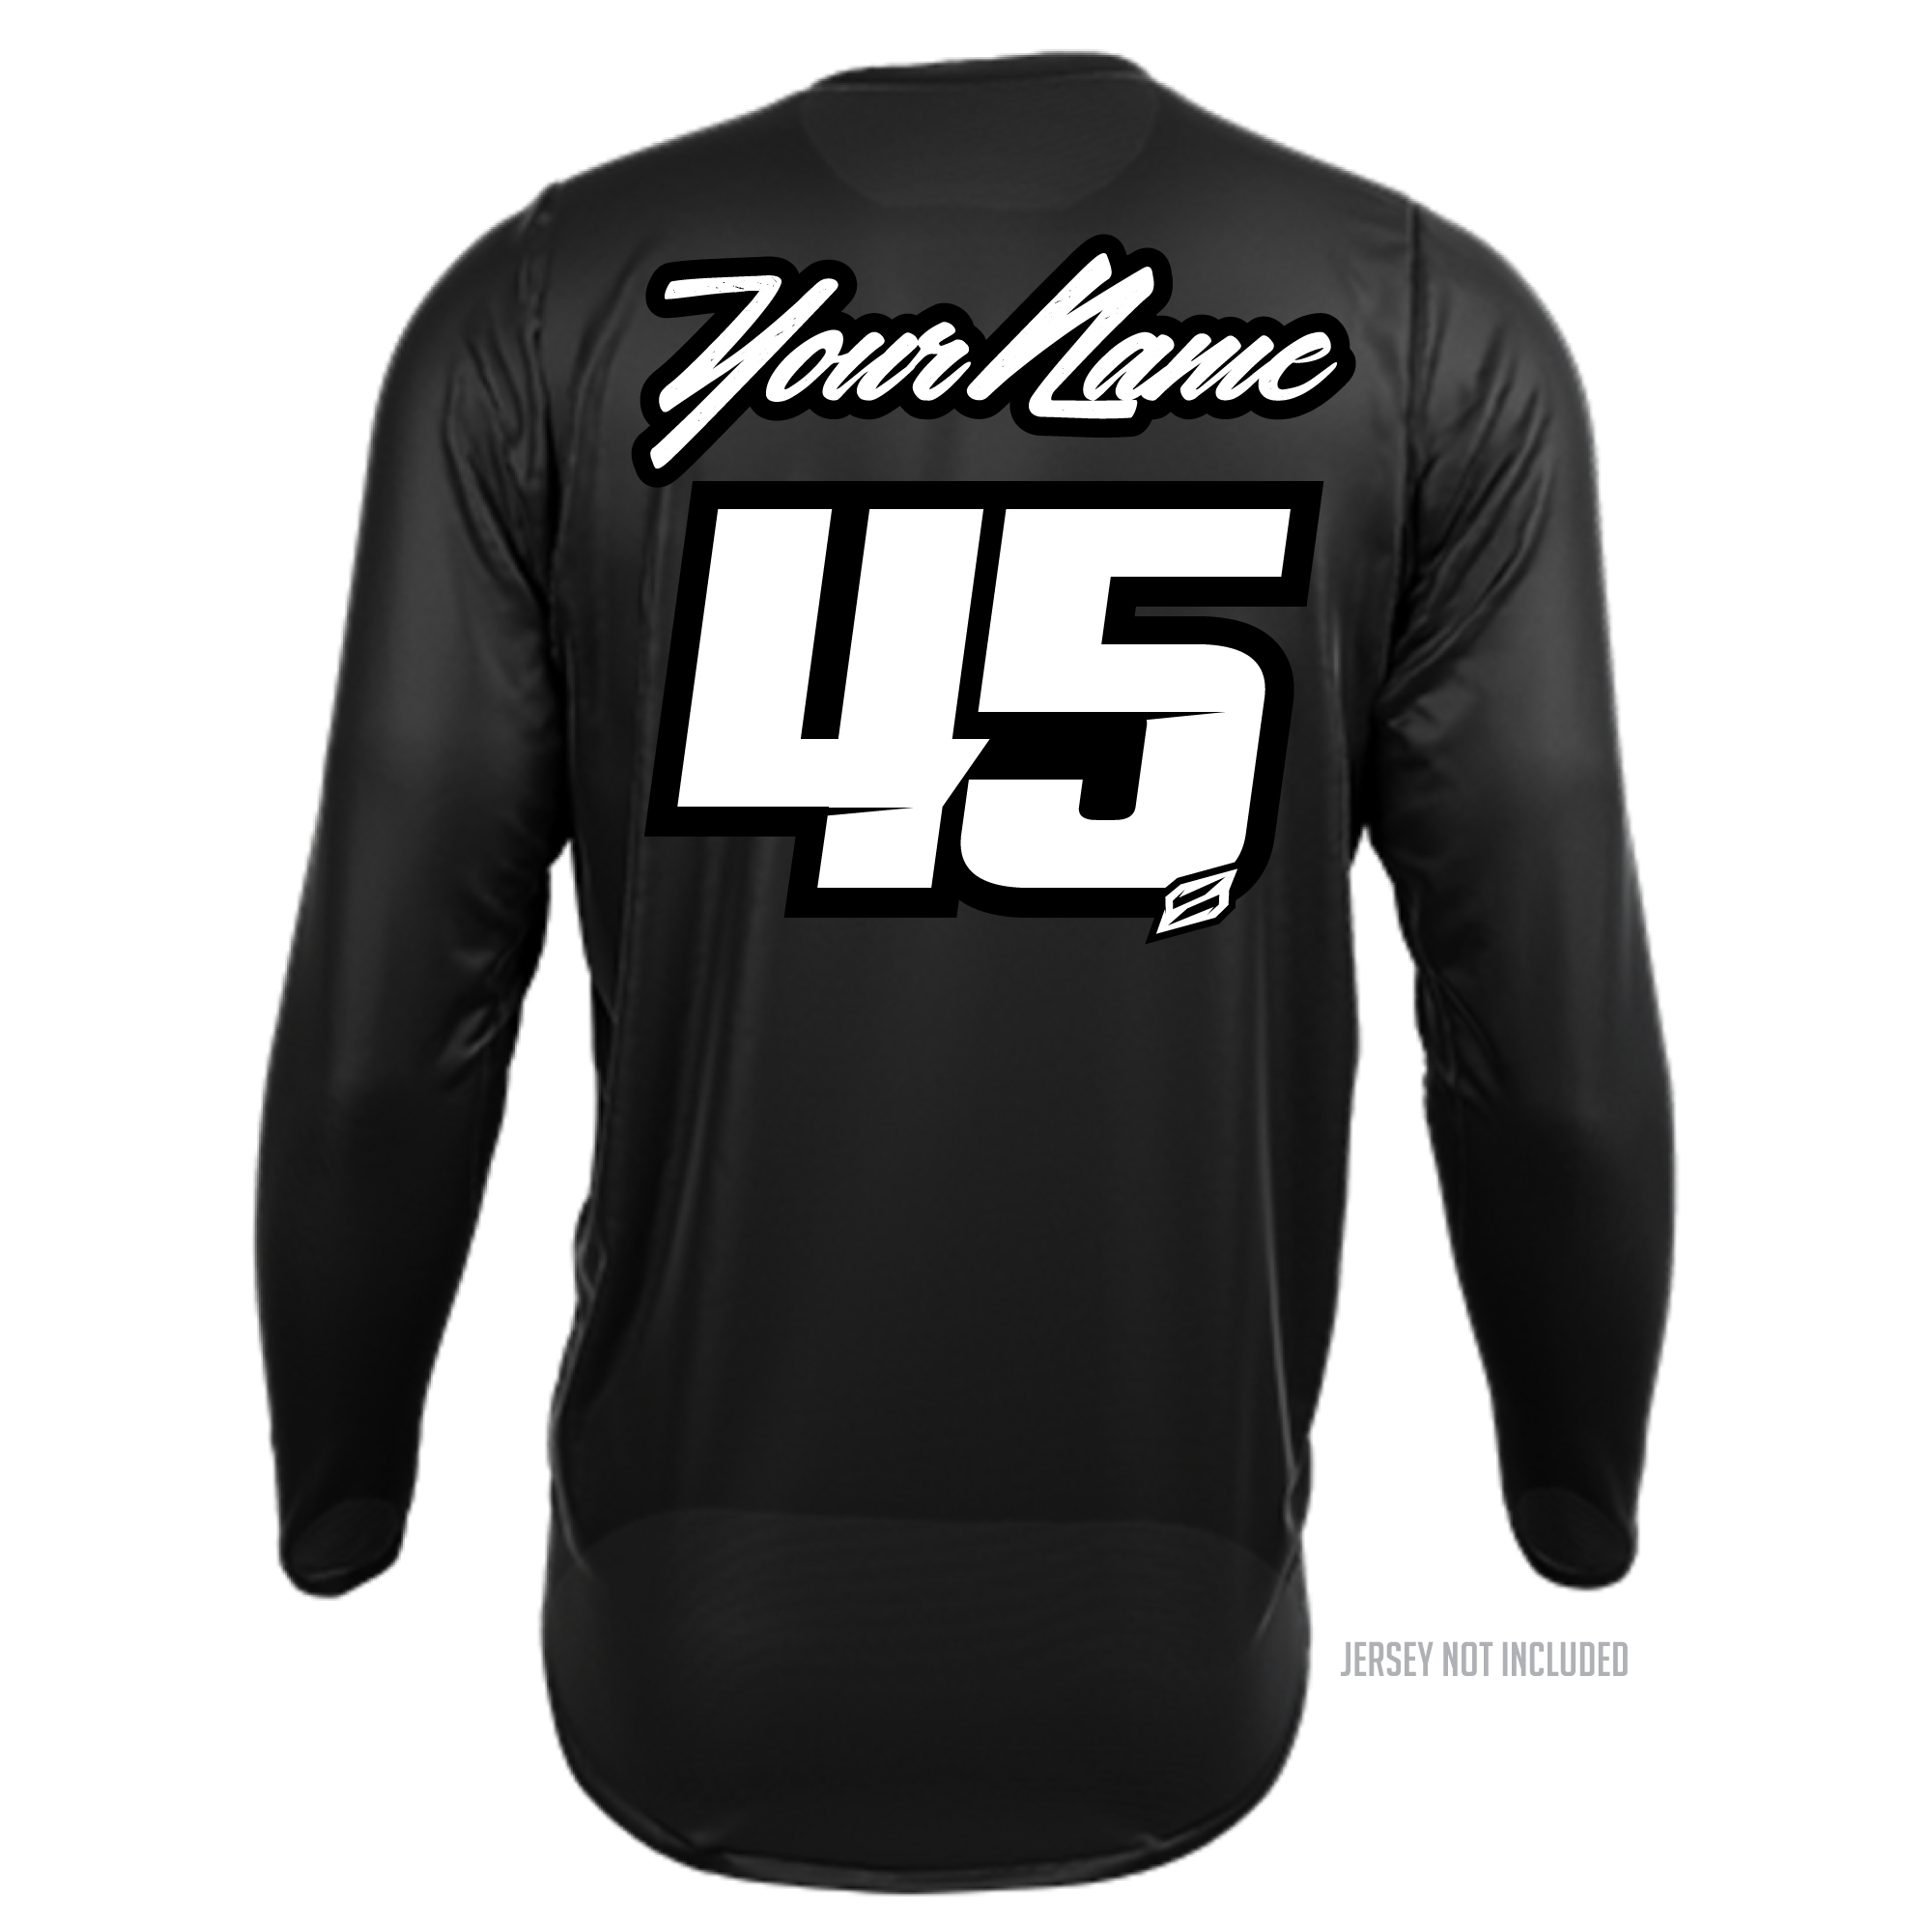 Split Designs Co Custom Mx Graphics New Cb150r T Shirt Black Jersey Print Series 5